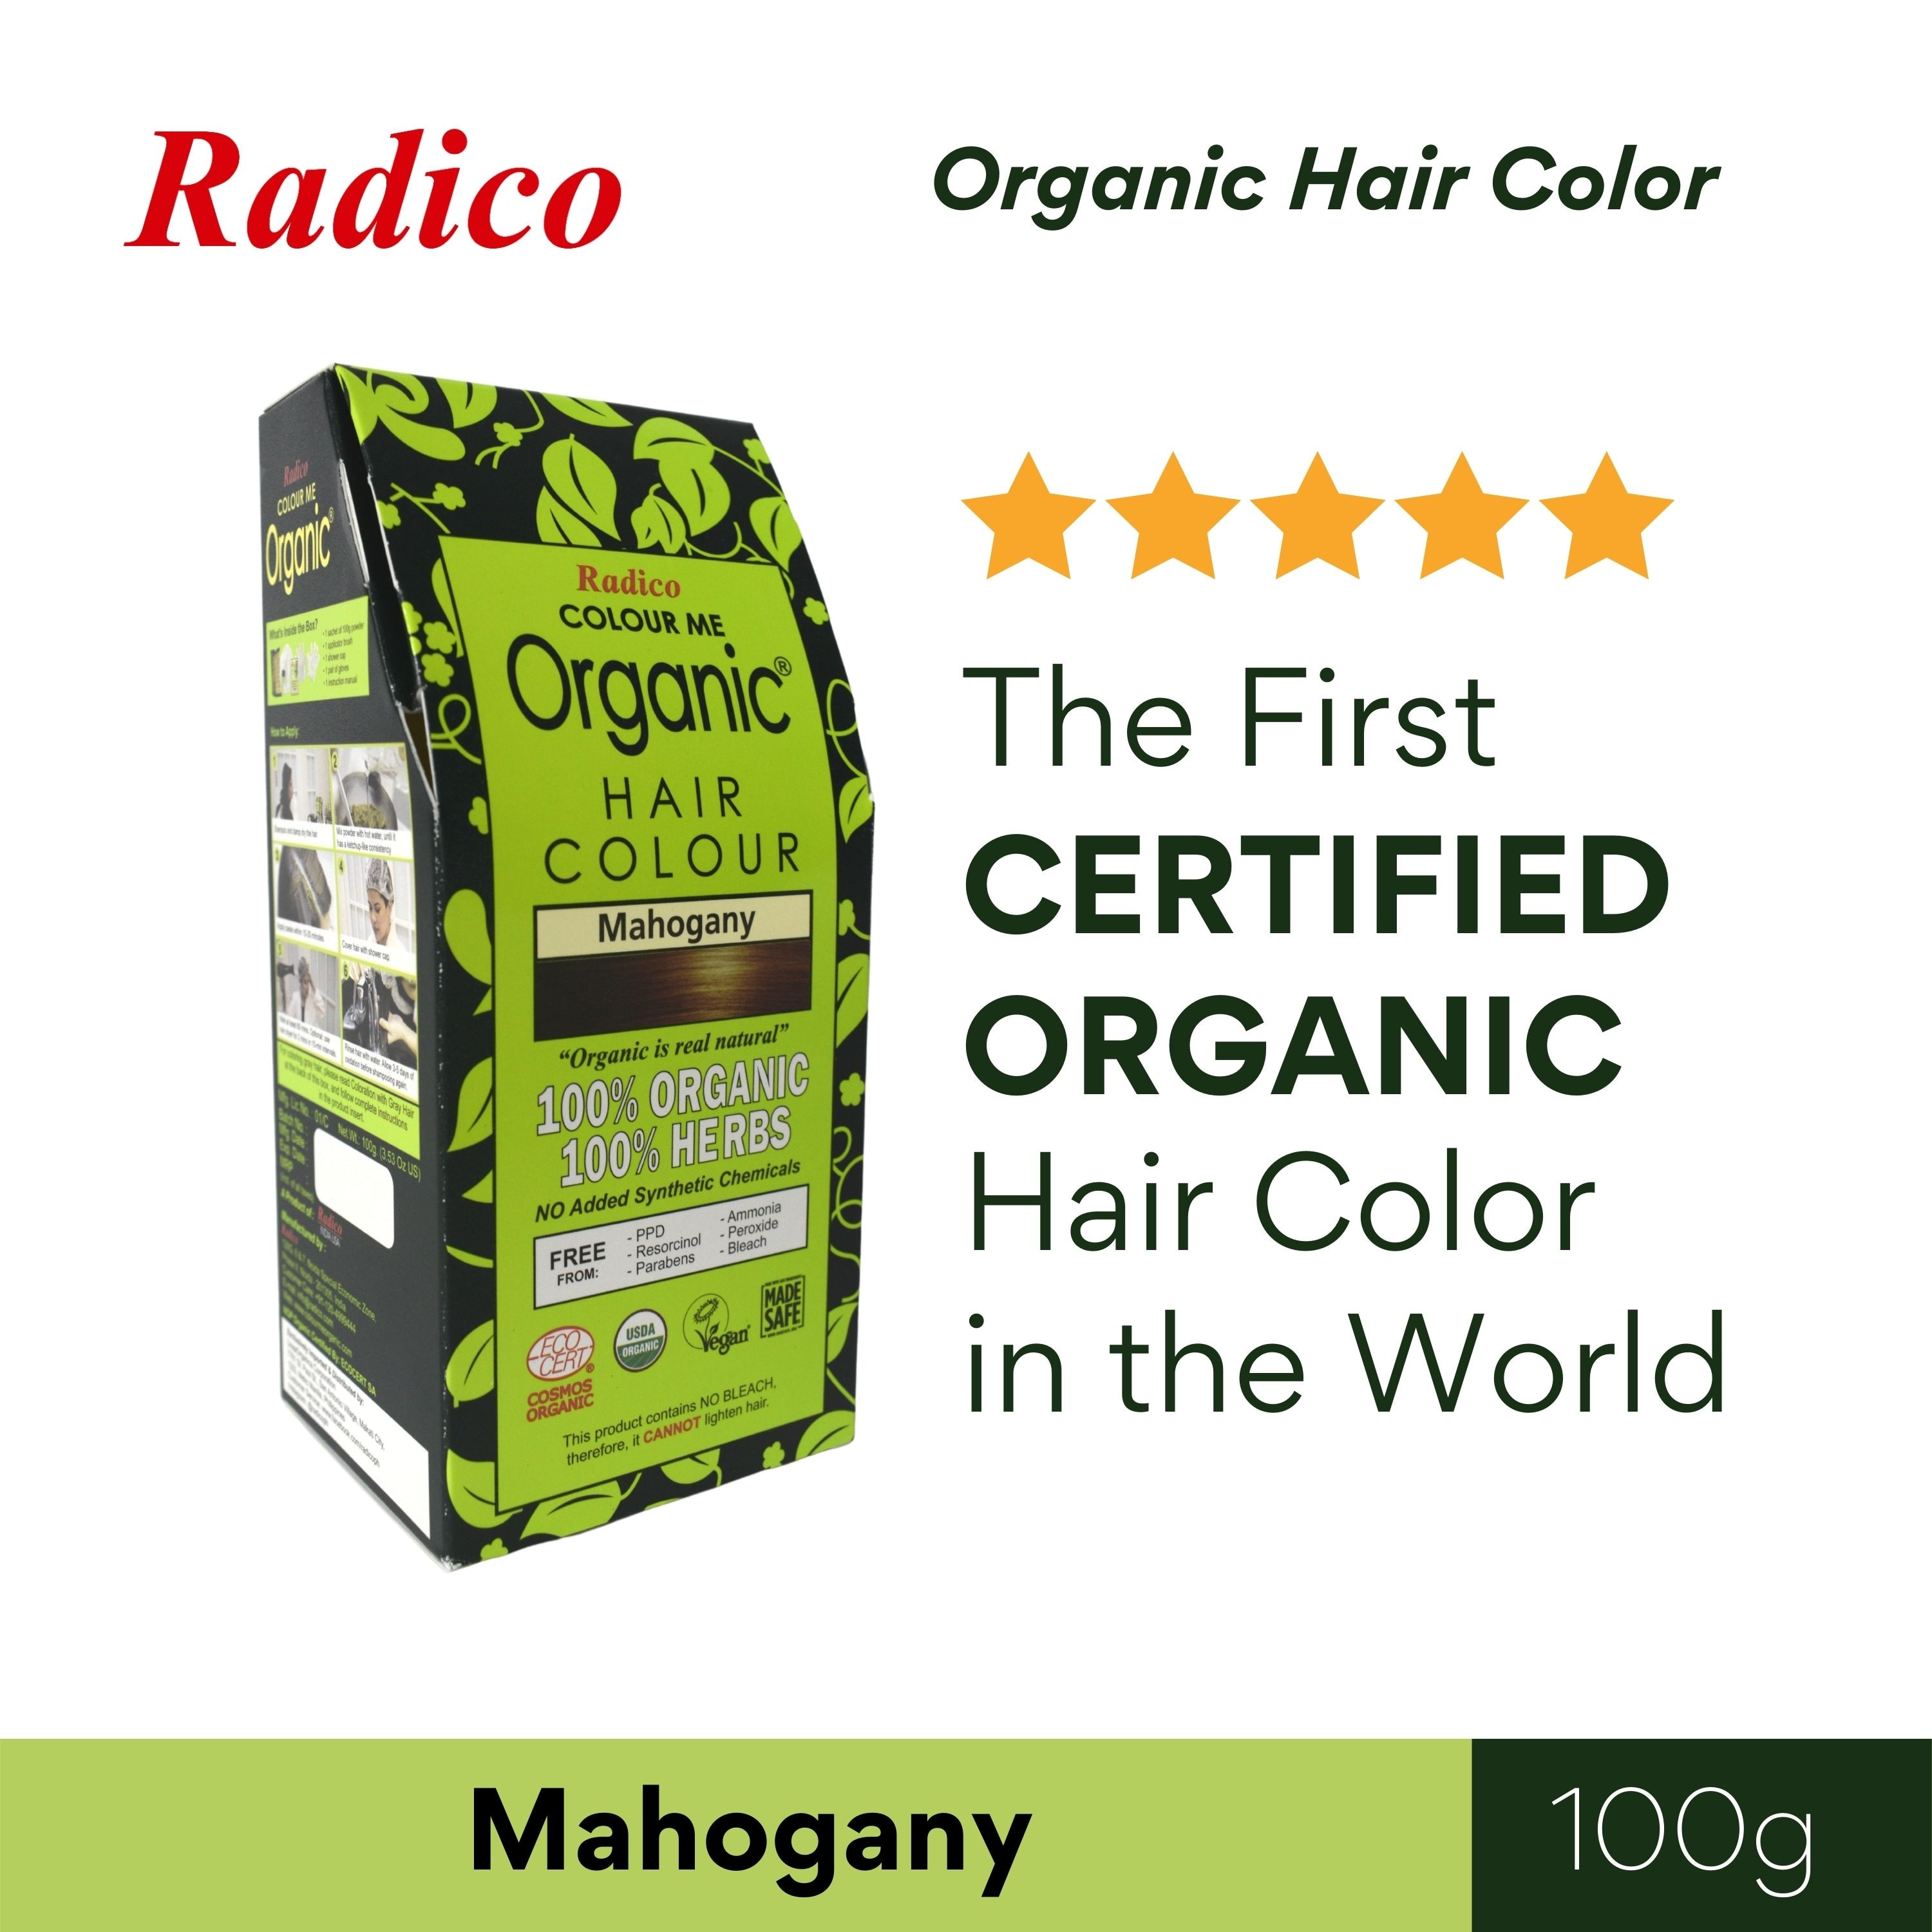 RADICOColour Me Organic Hair Color - Mahogany 100G,Natural Herbal/ OrganicGet 10% disc when you purchased minimum P500 worth of Health and Beauty products using COLLECT10